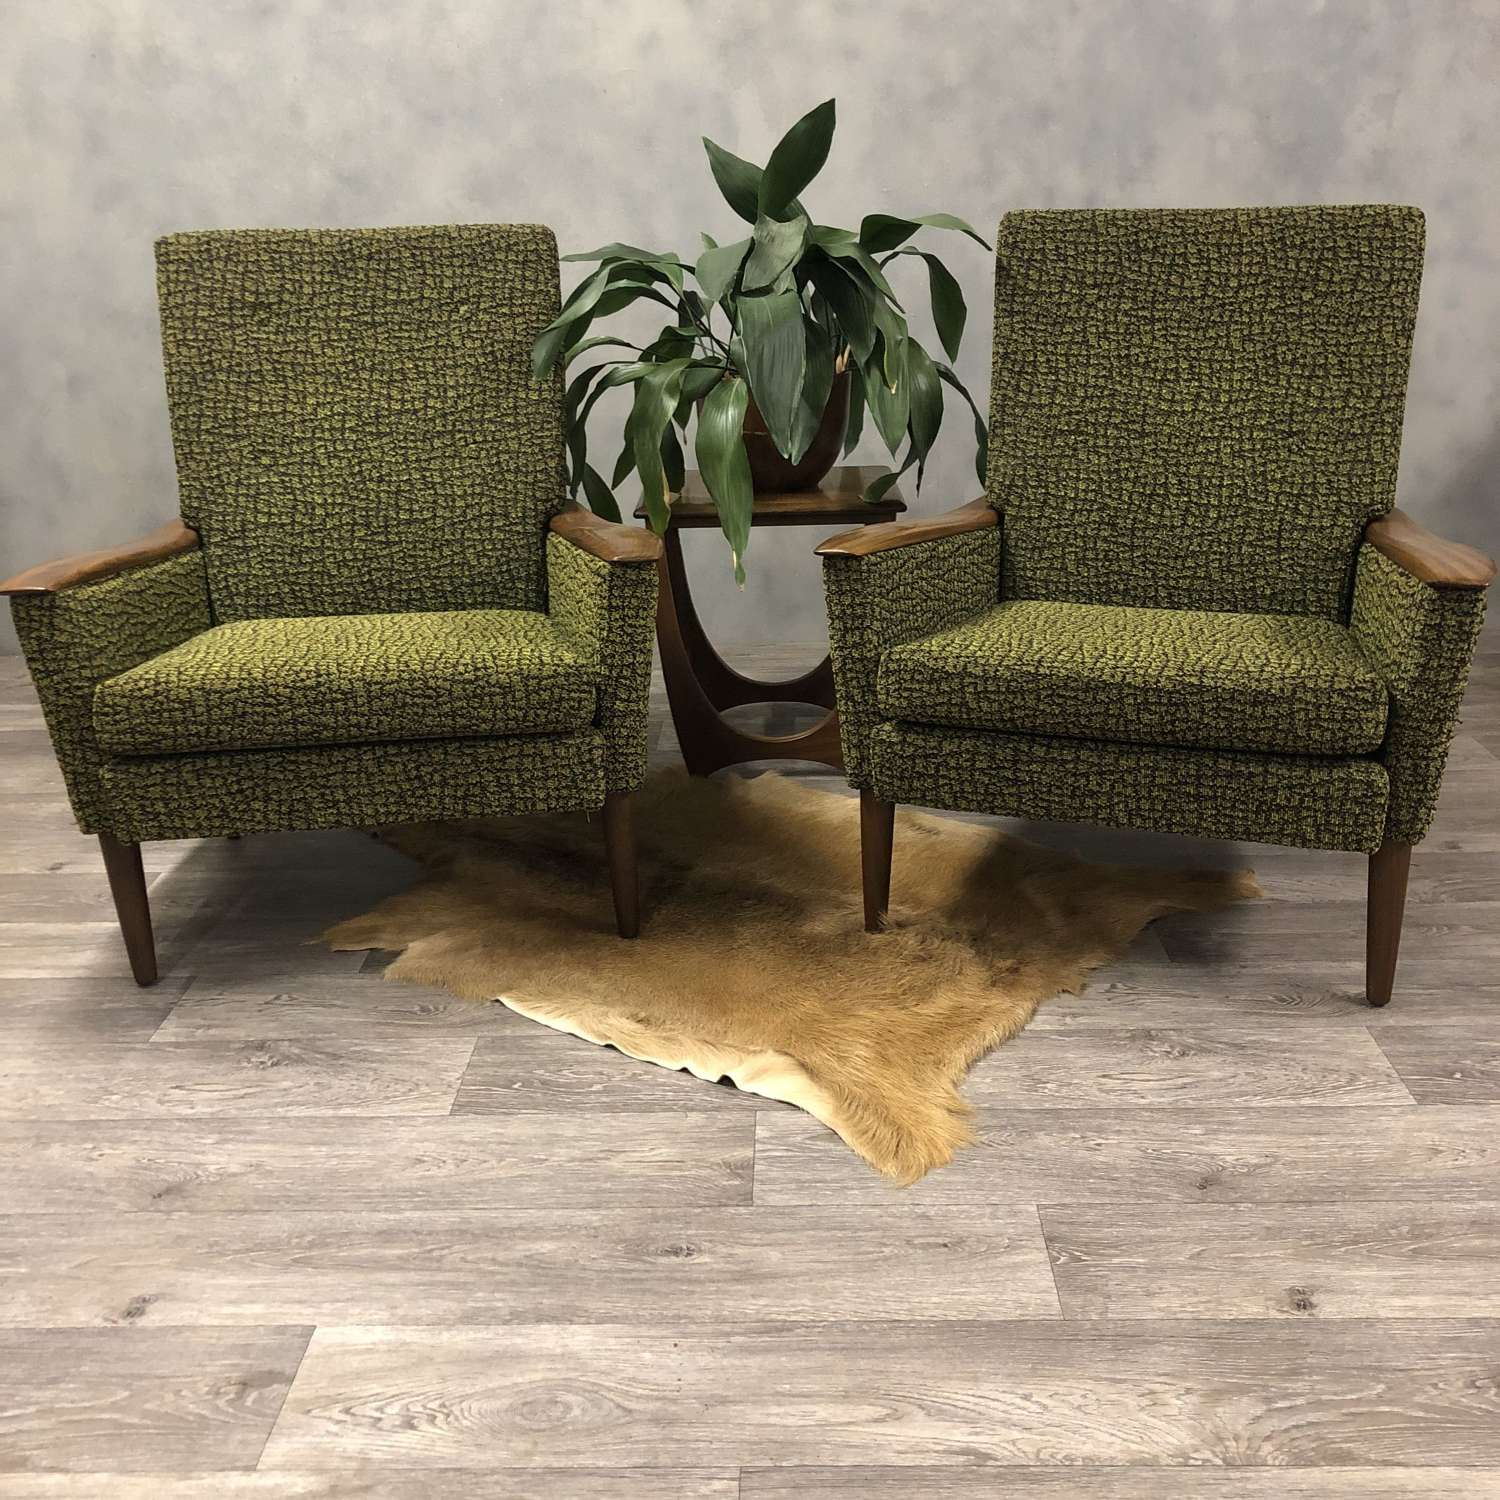 Pair of 1950s Greaves and Thomas lounge chairs